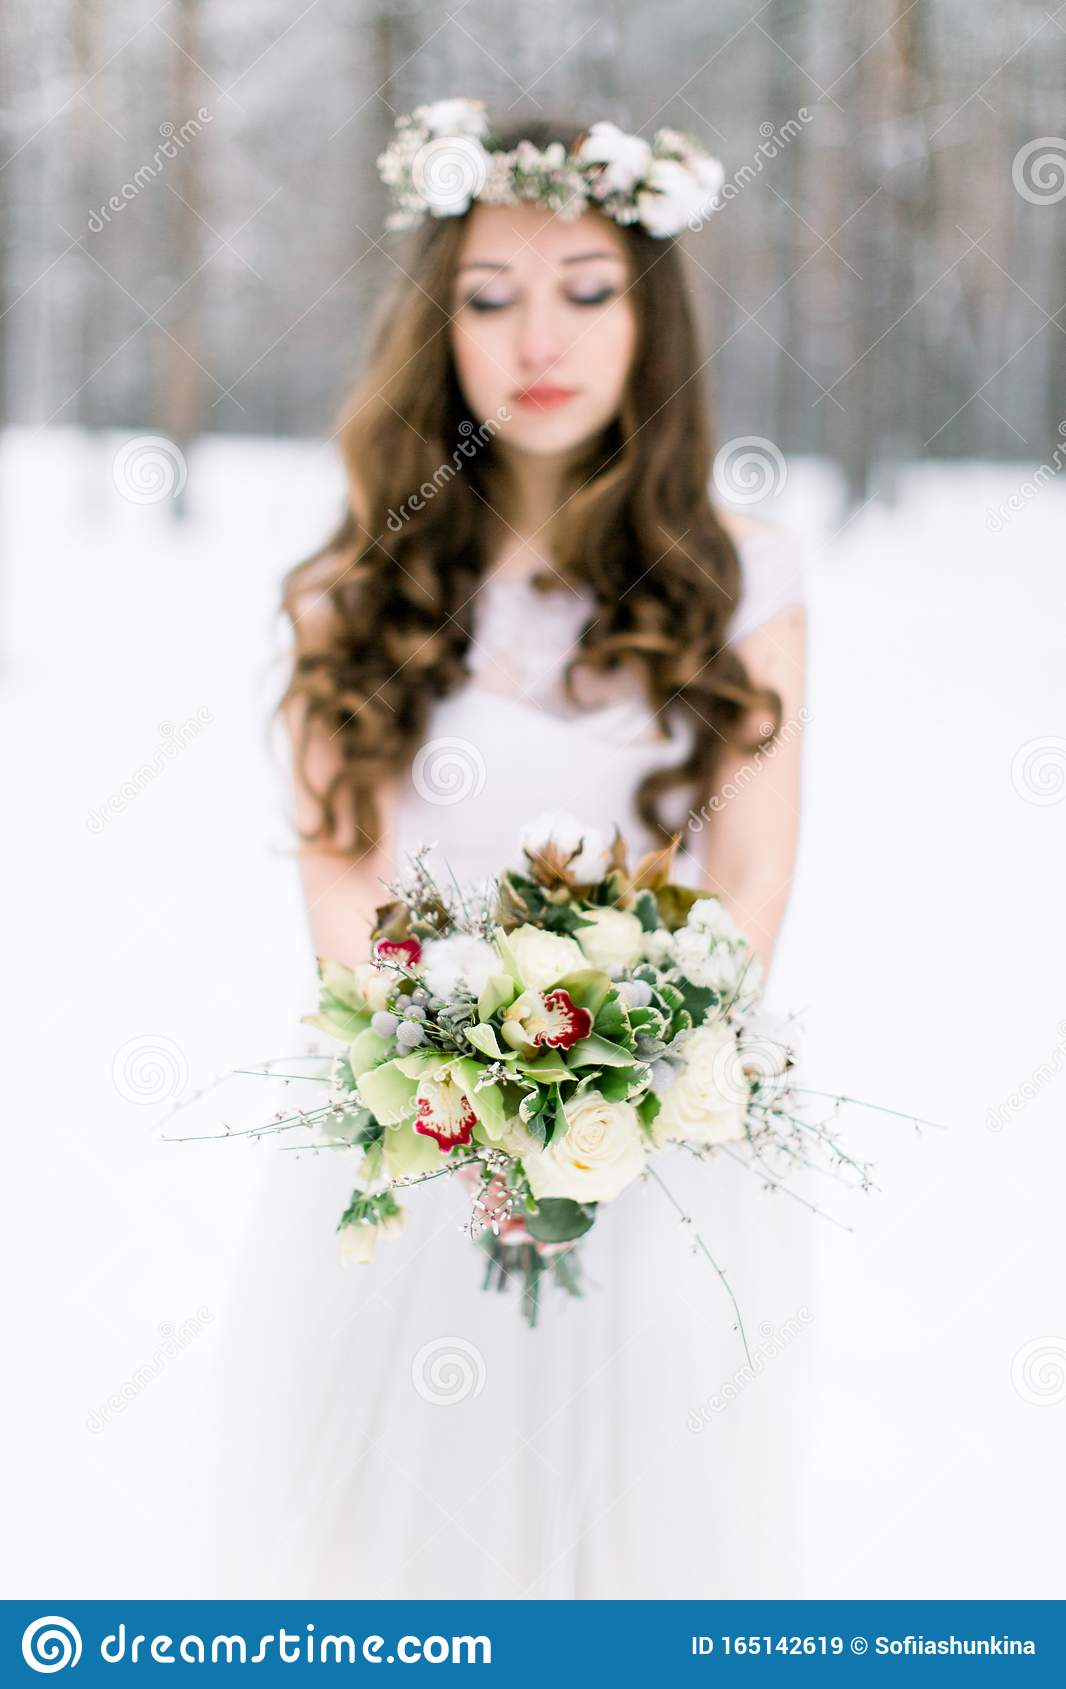 Winter Wedding Flower Bouquet With Cotton Young And Beautiful Bride With The Flower Bouquet In Winter Forest Focus On Stock Image Image Of Female Cold 165142619